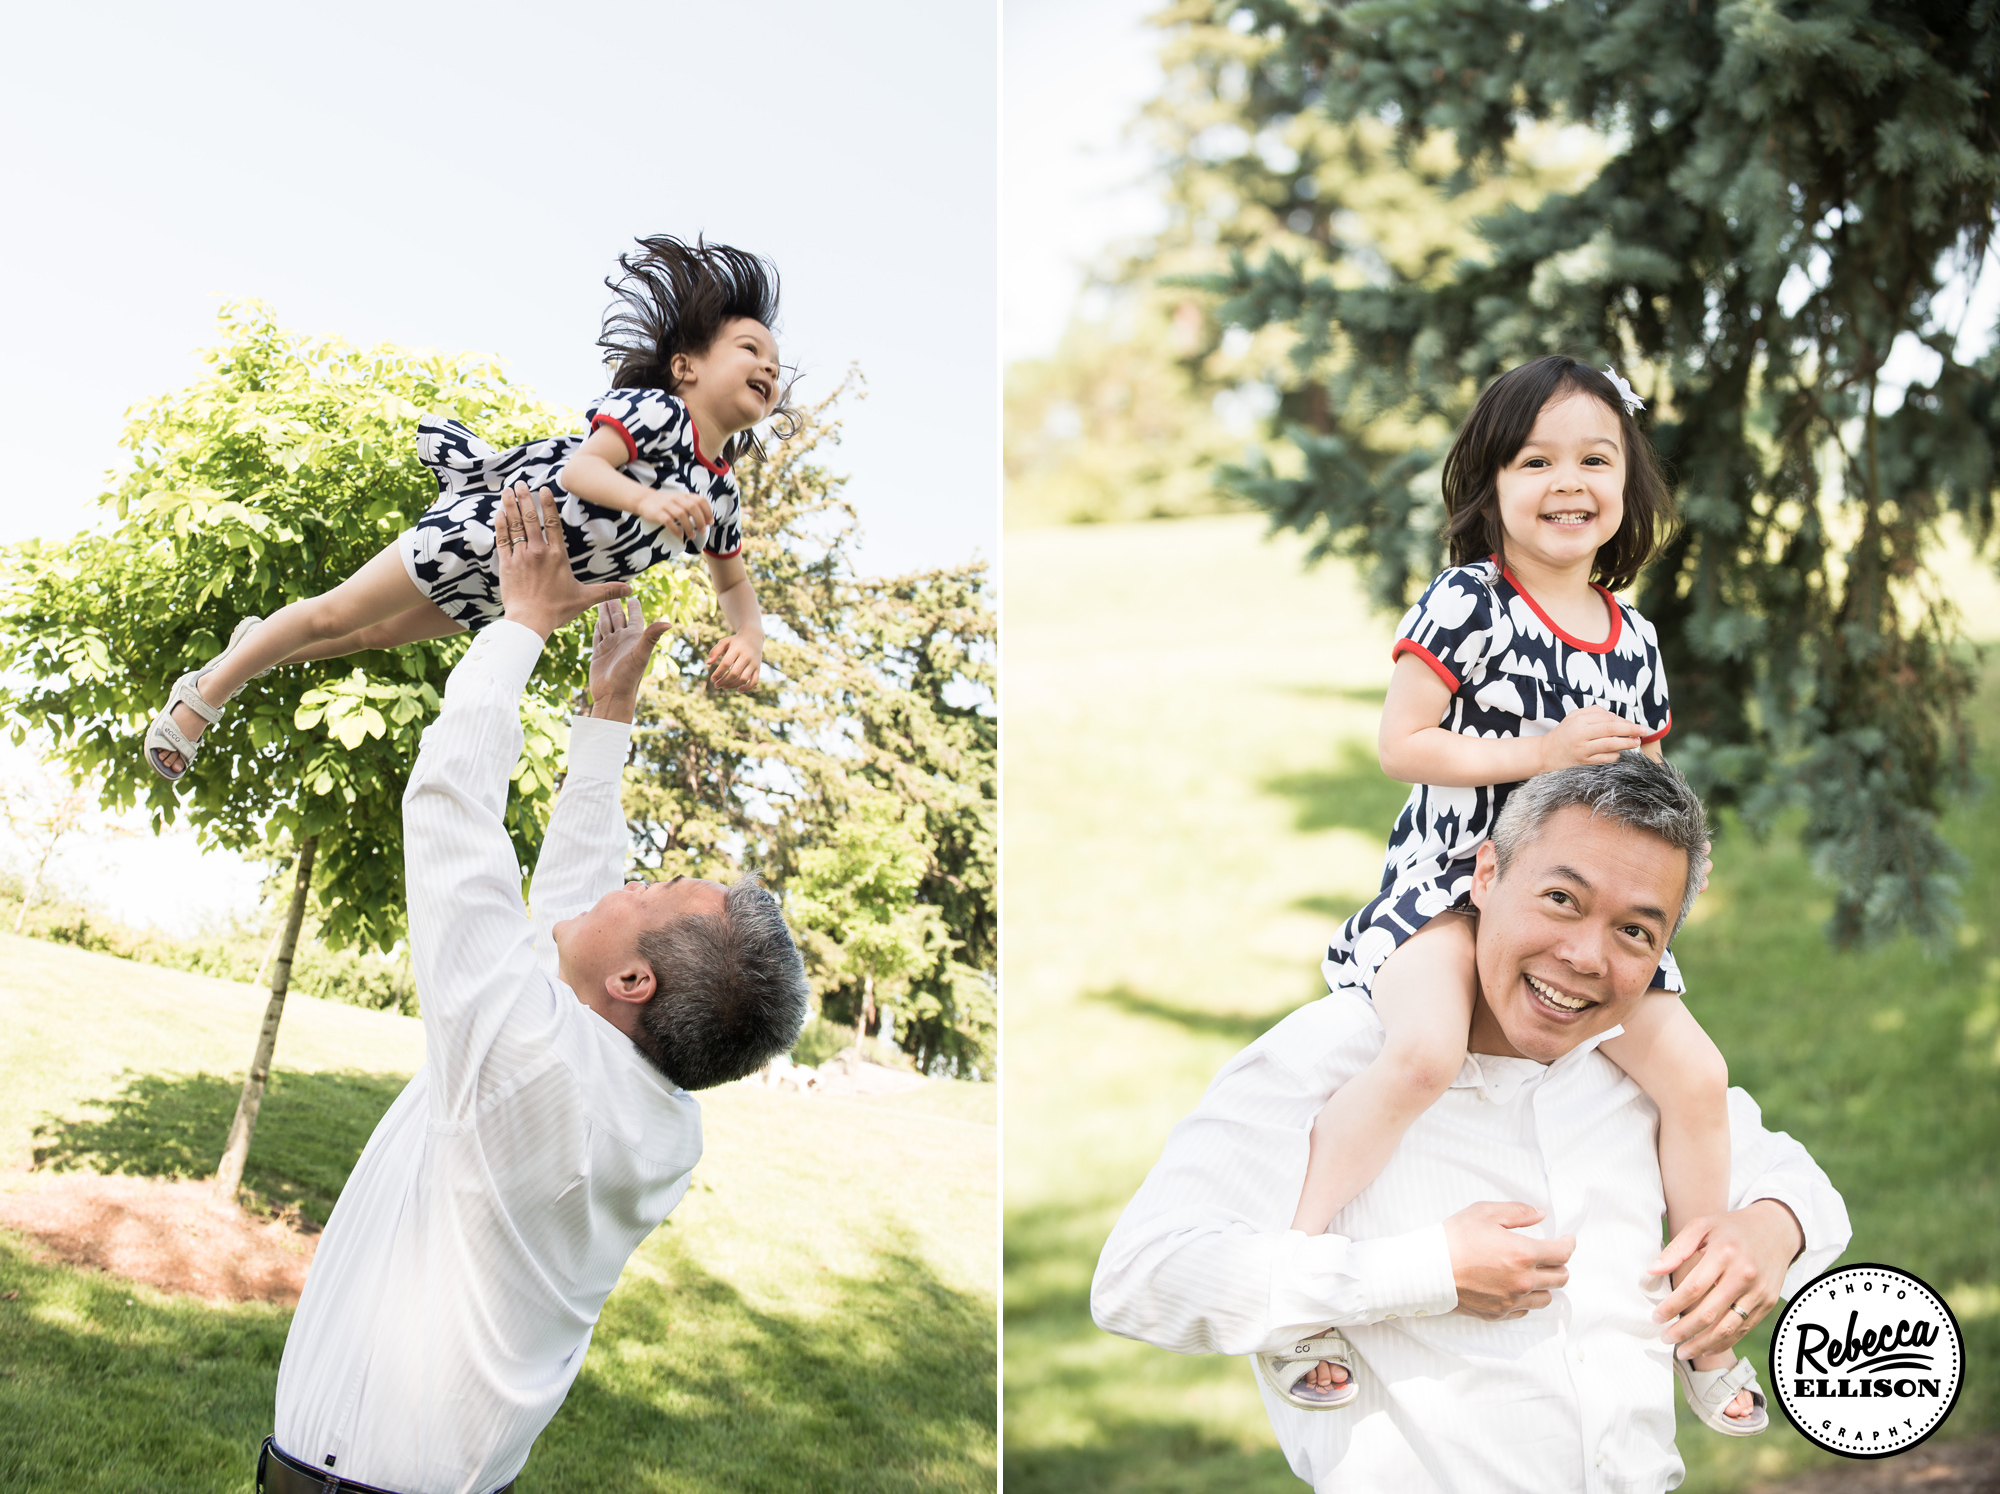 Father and Daughter play in the sun during an outdoor family portraits session with Kirkland Family Photographer Rebecca Ellison